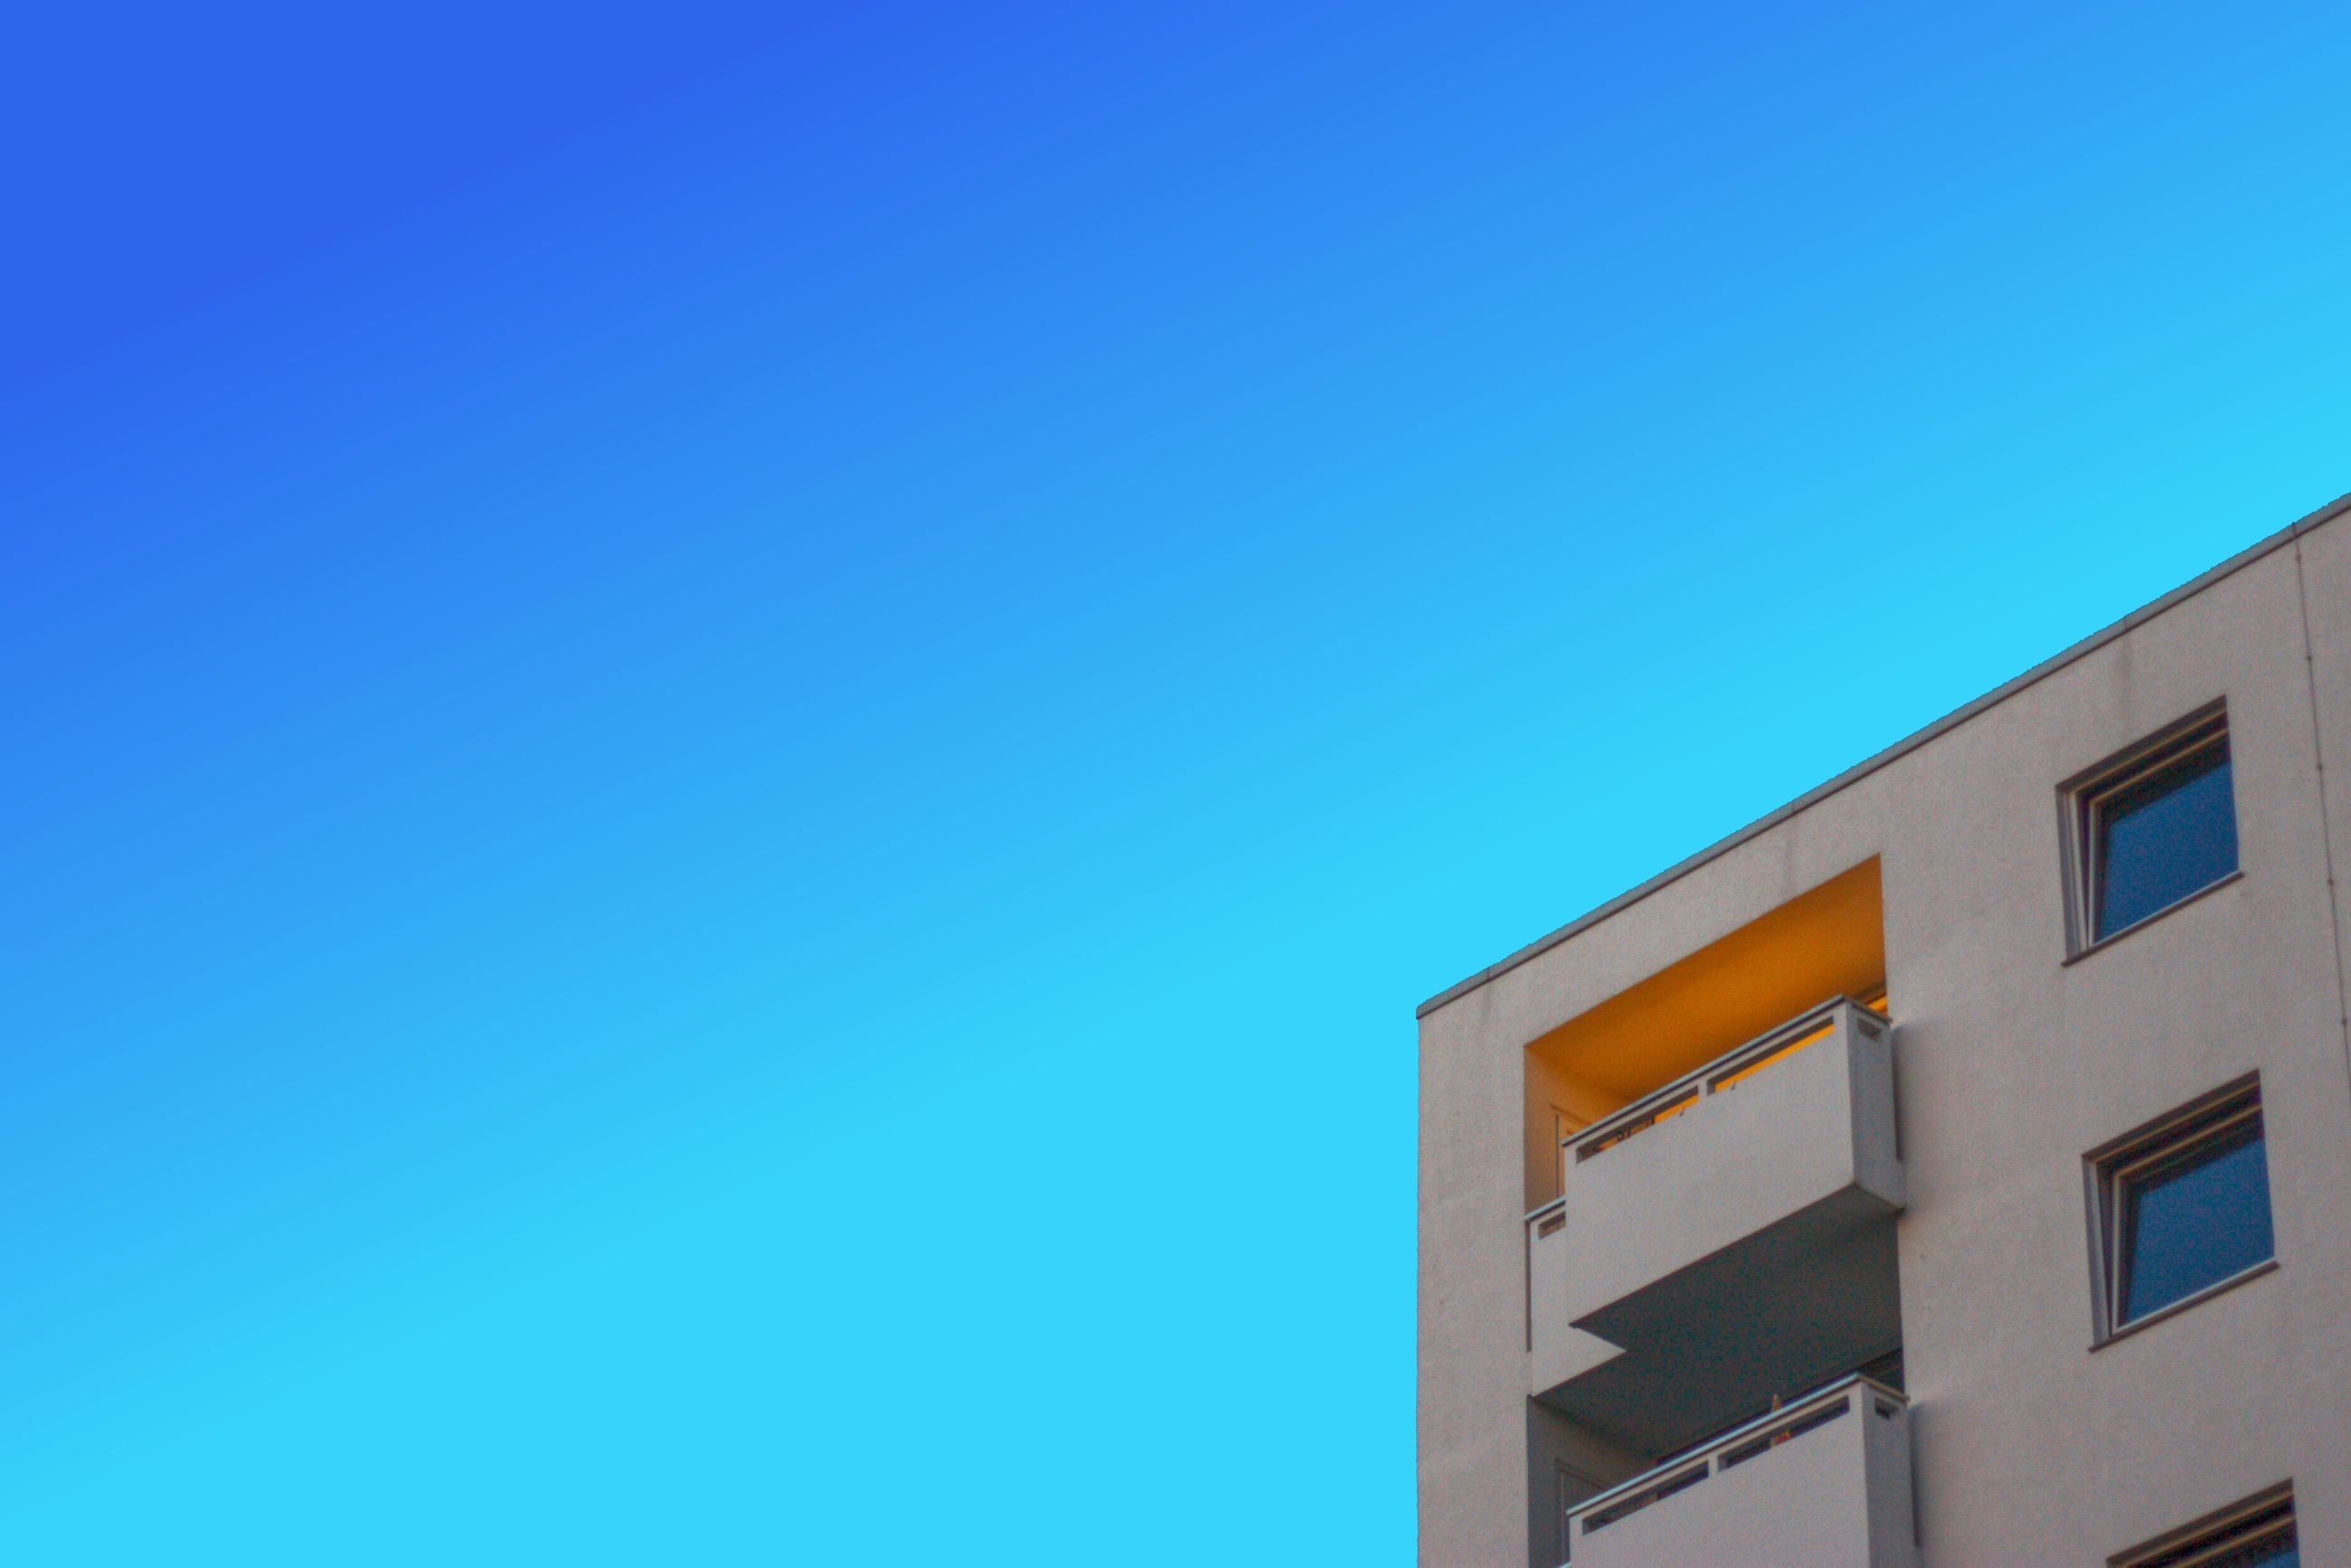 building exterior, built structure, architecture, blue, clear sky, low angle view, copy space, no people, day, outdoors, sky